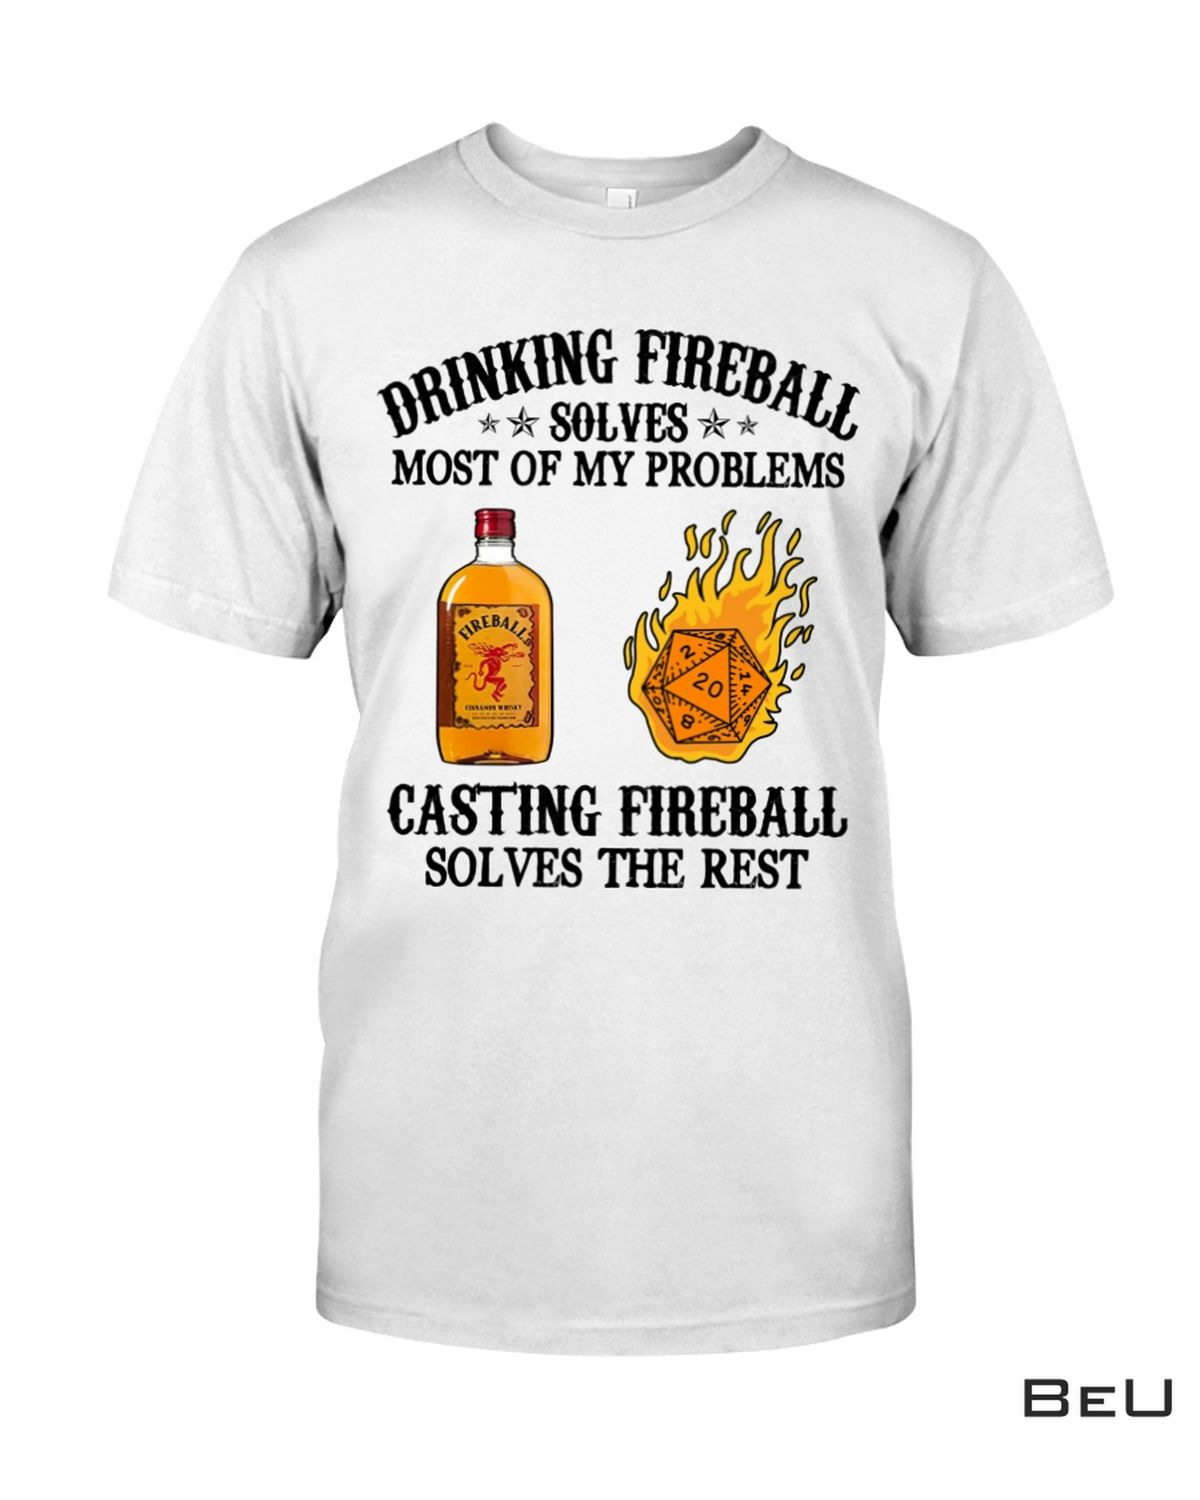 Drinking Fireball Solves Most Of My Problems Casting Fireball Solves The Rest Shirt, hoodie, tank top